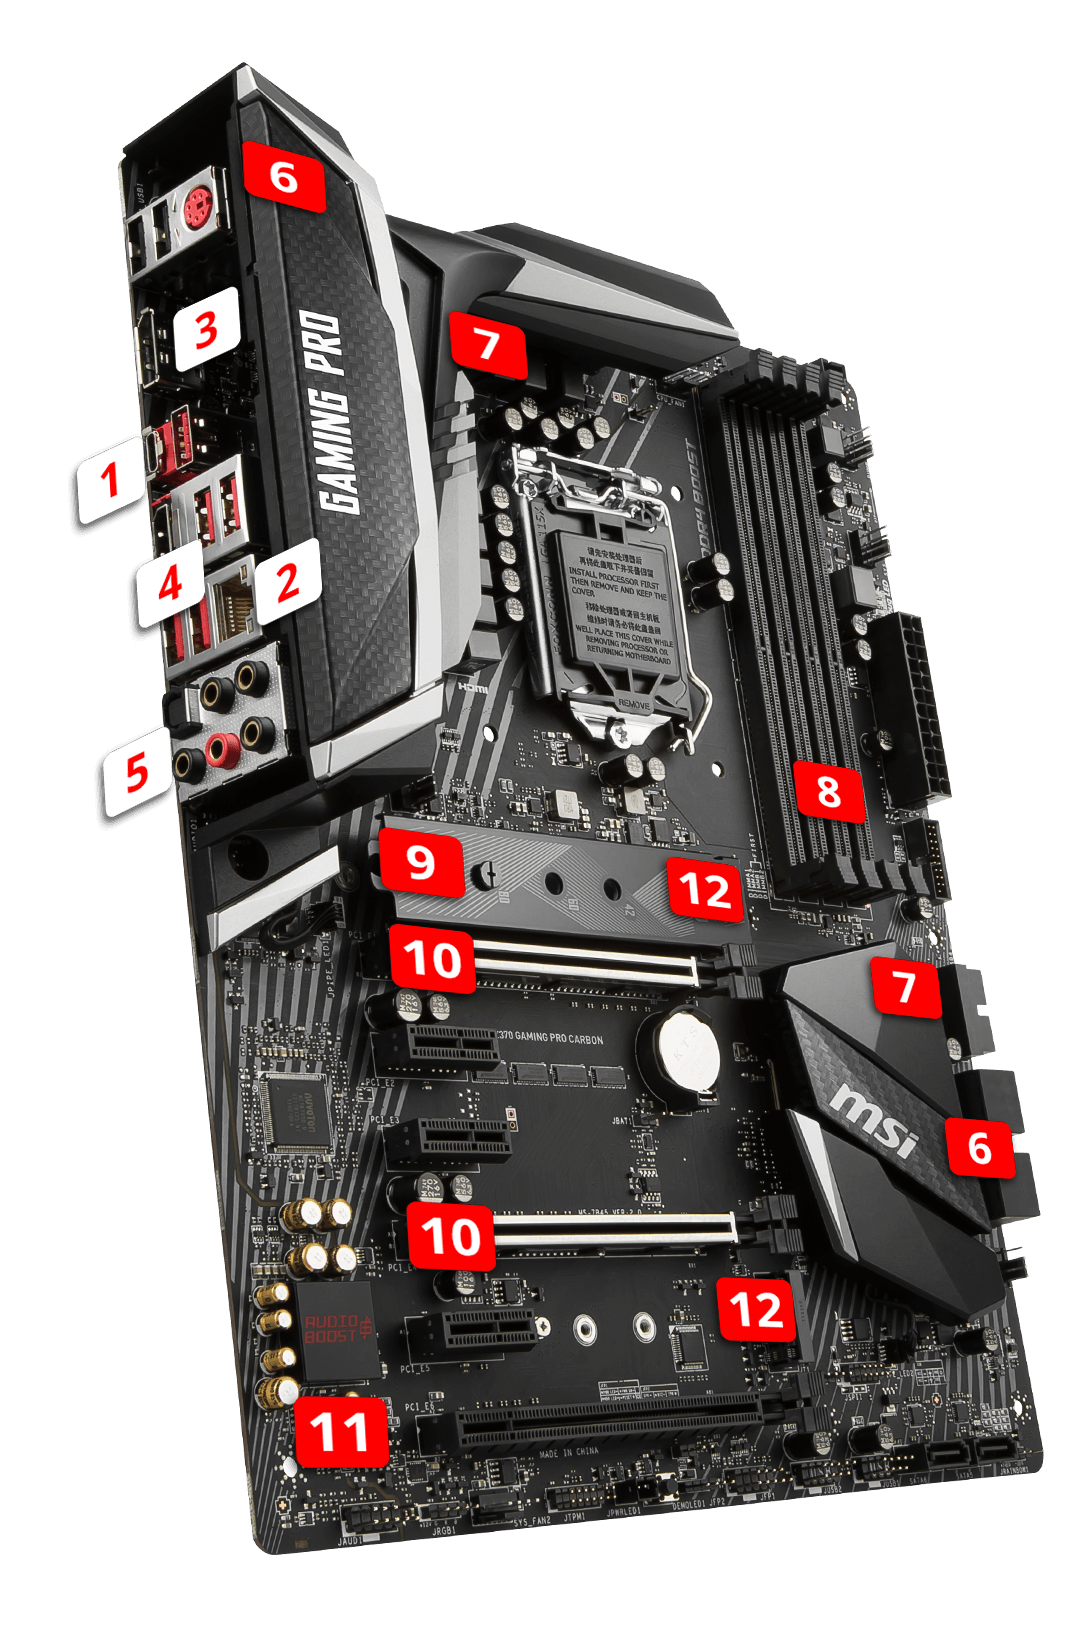 MSI Z370 GAMING PRO CARBON overview